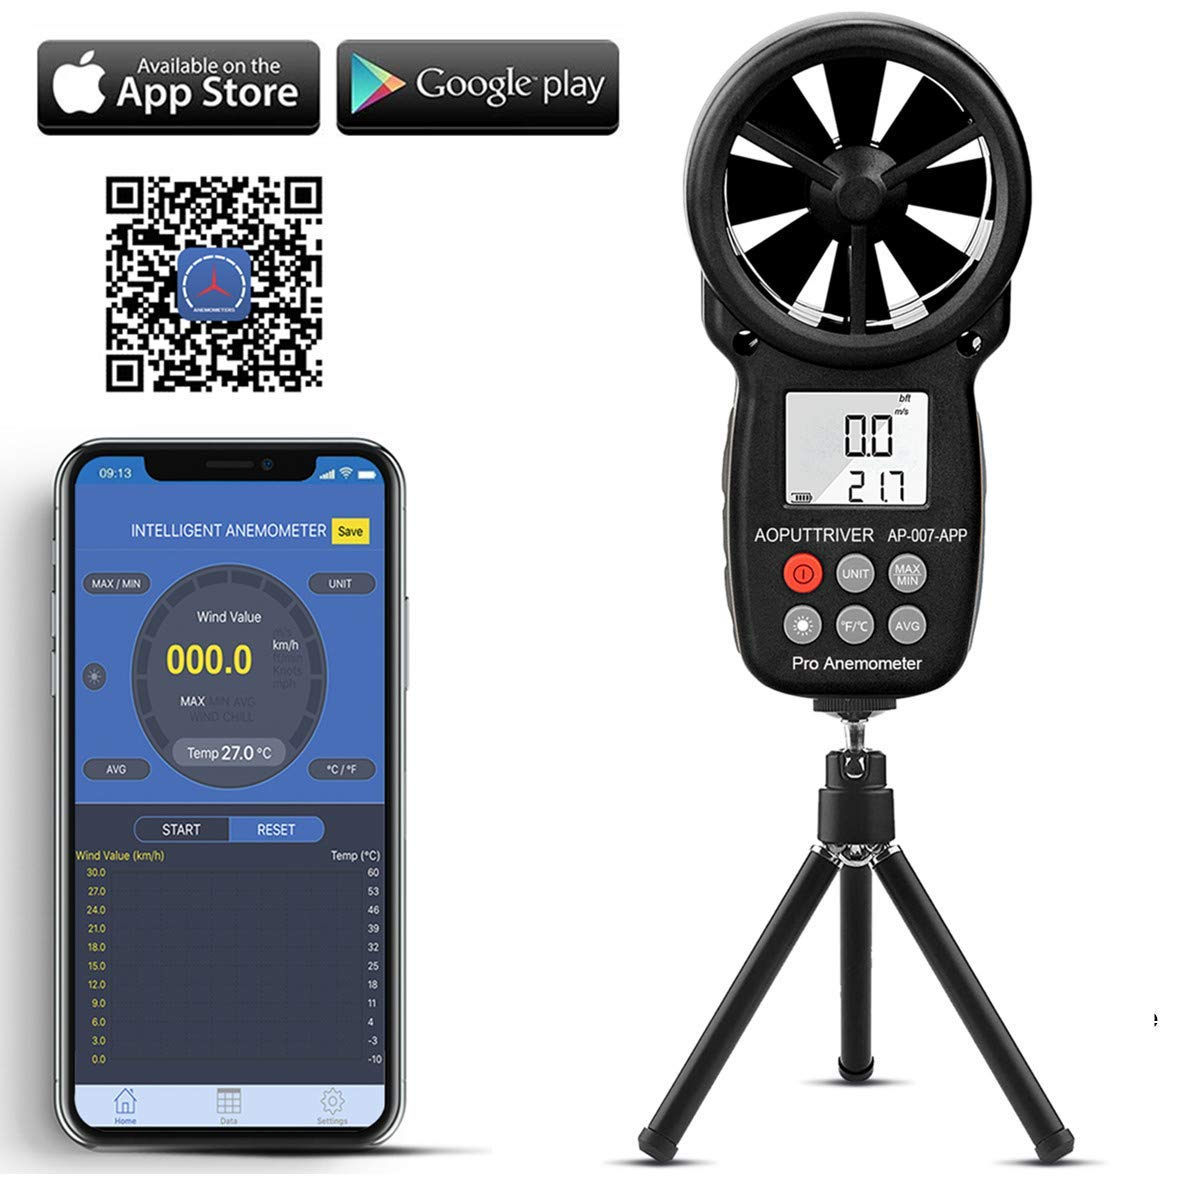 AOPUTTRIVER Digital Anemometer Handheld Wind Speed Meter,Wind Speed Gauges for Measuring Wind Speed,Temperature and Wind Chill with Backlight and Max/Min (AP-007) (007APP+Tripod)